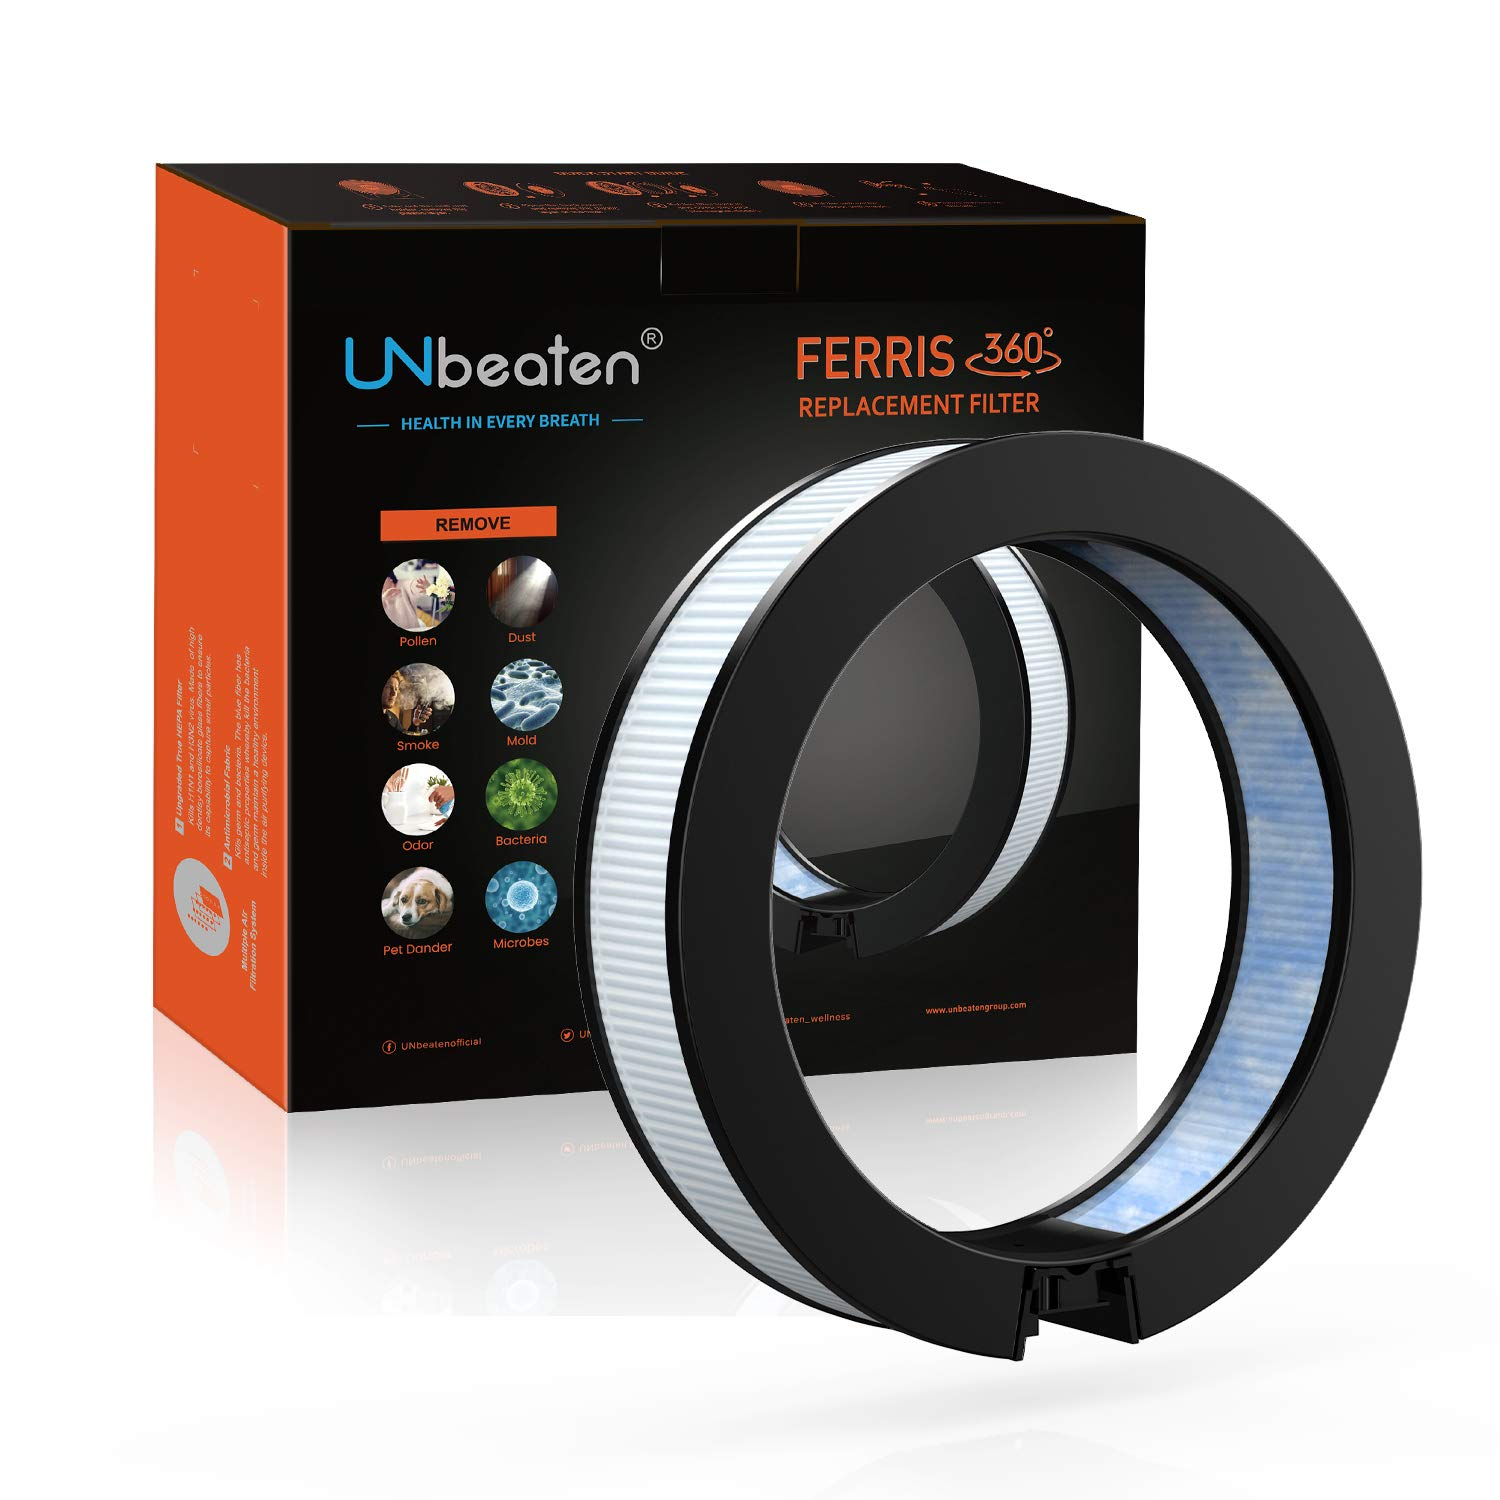 UNbeaten Air Purifiers Filter Ferris 360 Antimicrobial True Hepa Filter Removes Allergies and Pets Dander Smoke Dust Mold